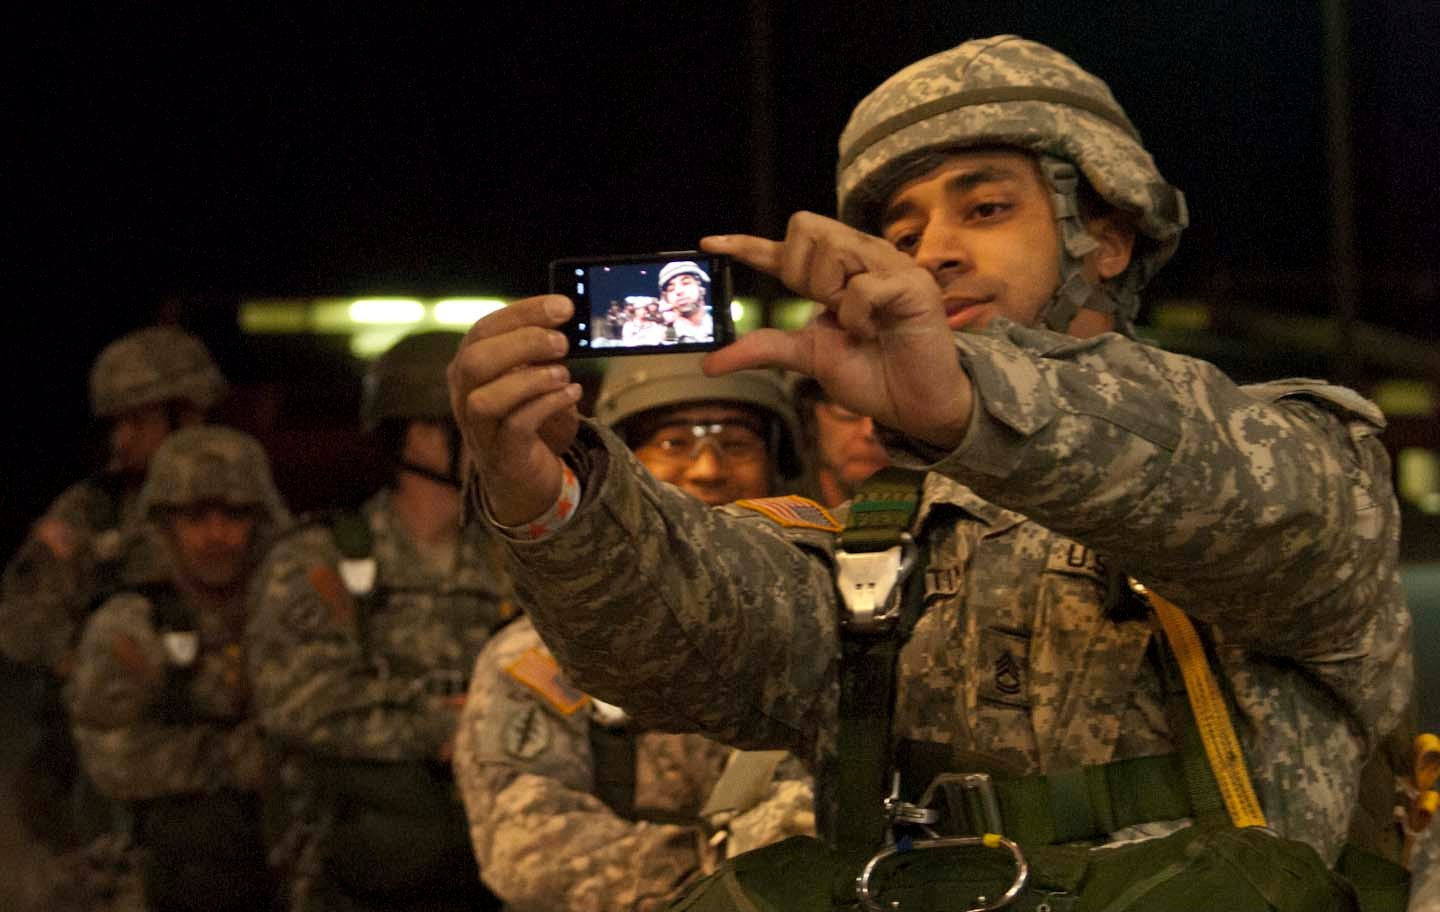 The USAF's Newest Weapon: The Smart Phone